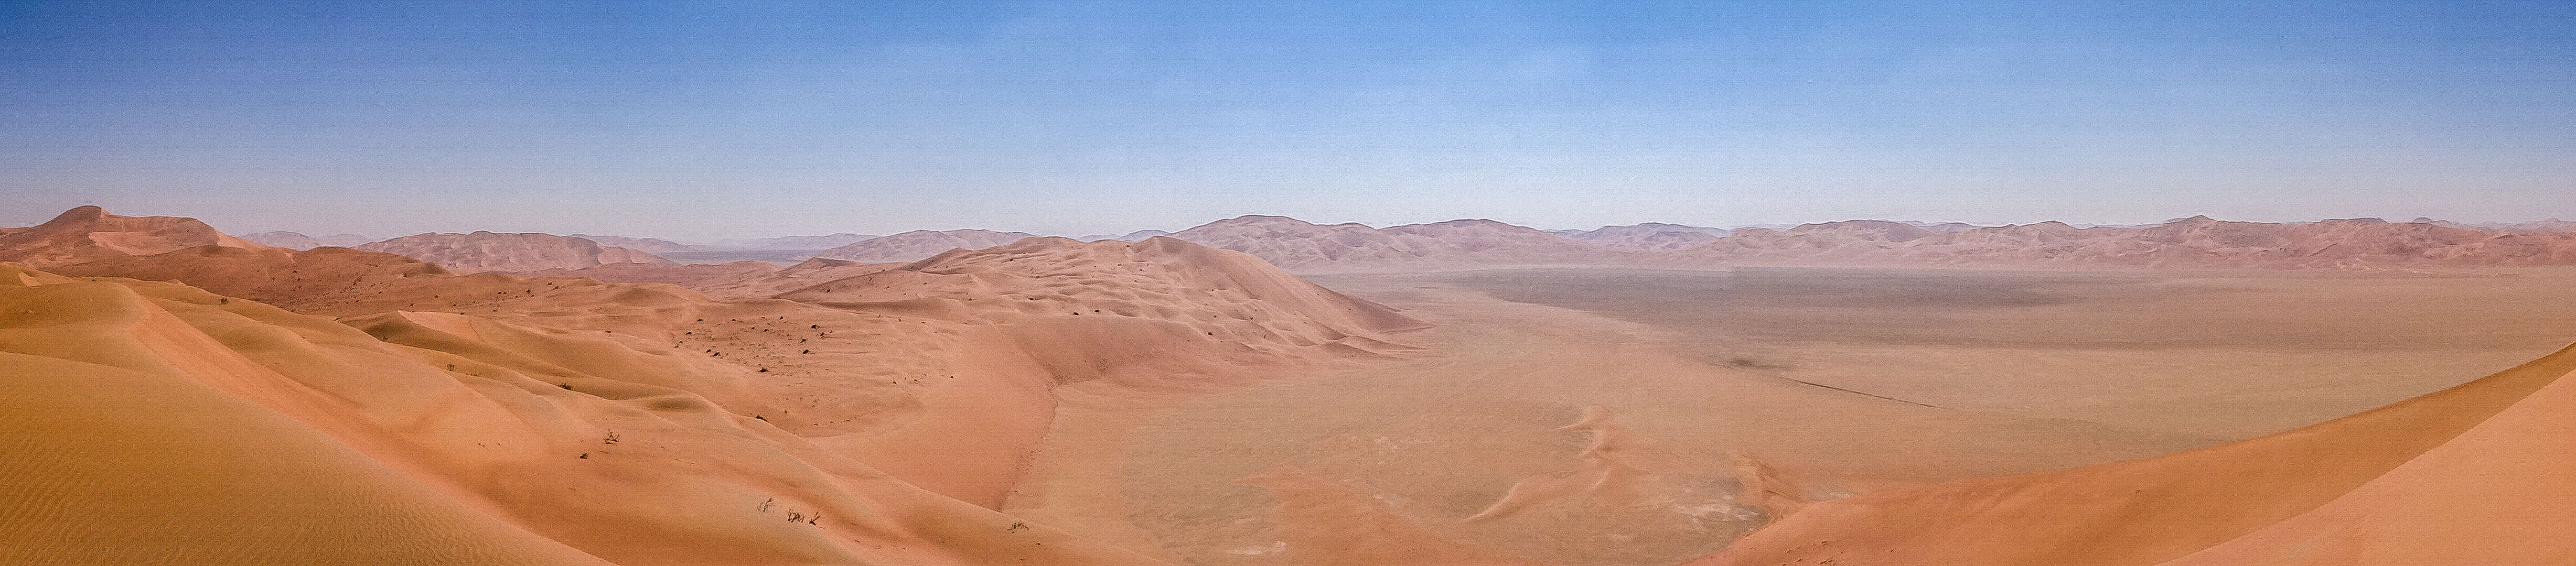 Sabkhas between massive sand dunes in the Rub' Al-Khali (Florent Egal)